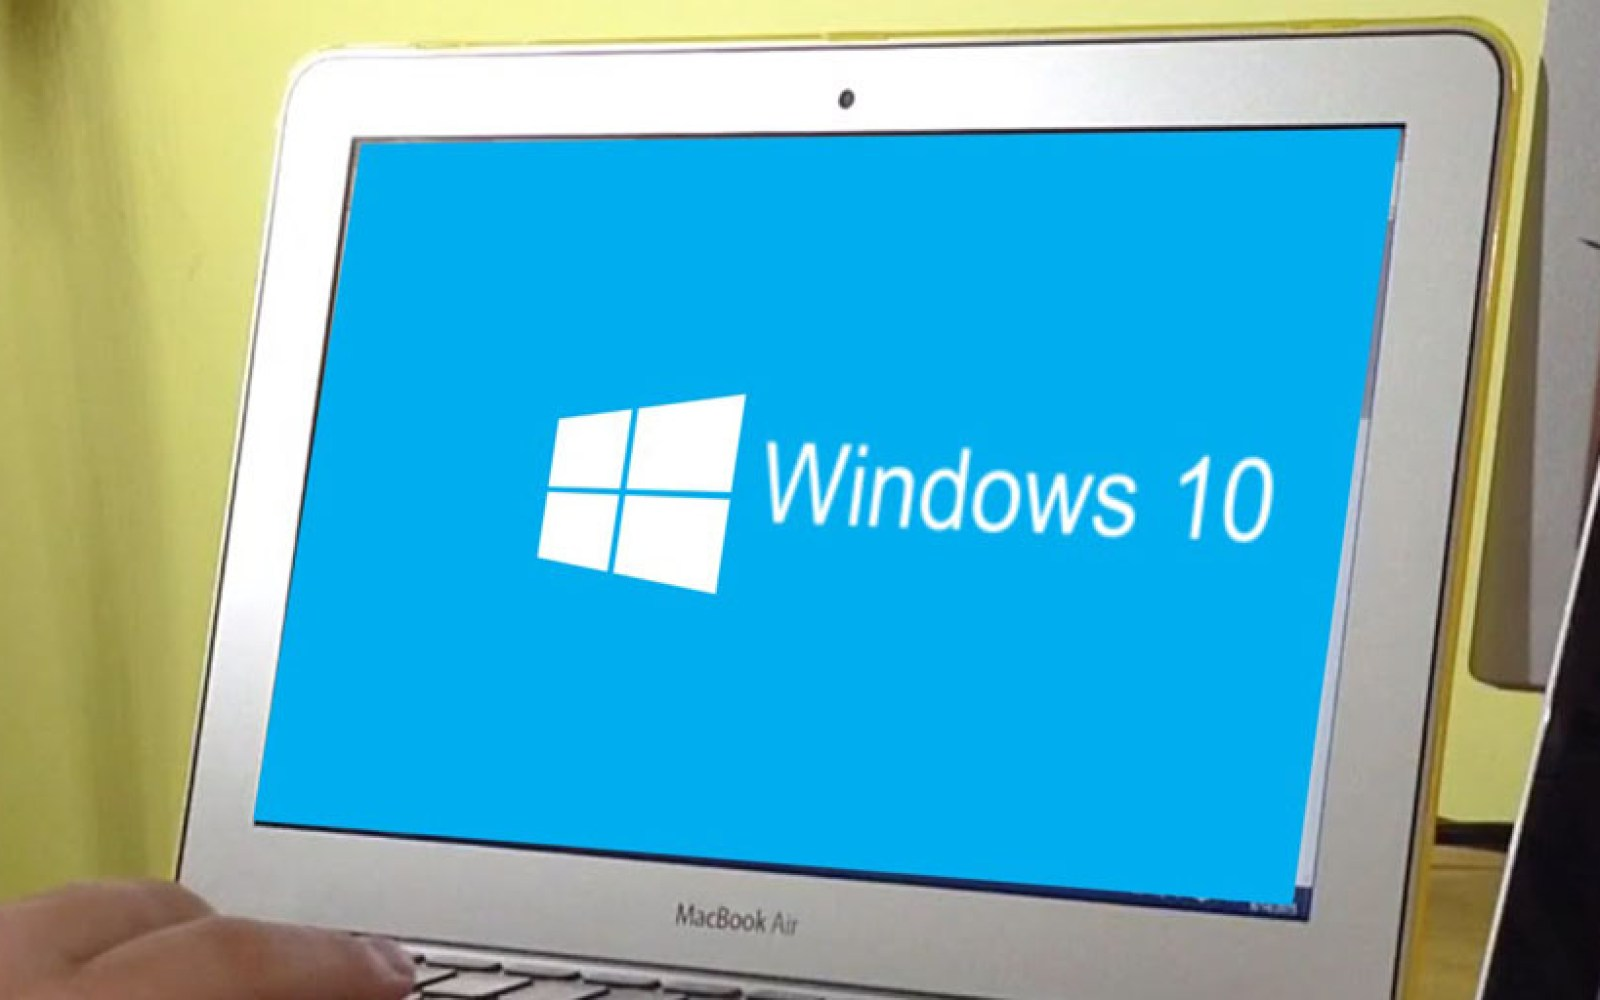 Boot Camp now supports 64-bit Windows 10 on a wide range of Macs dating back to 2012